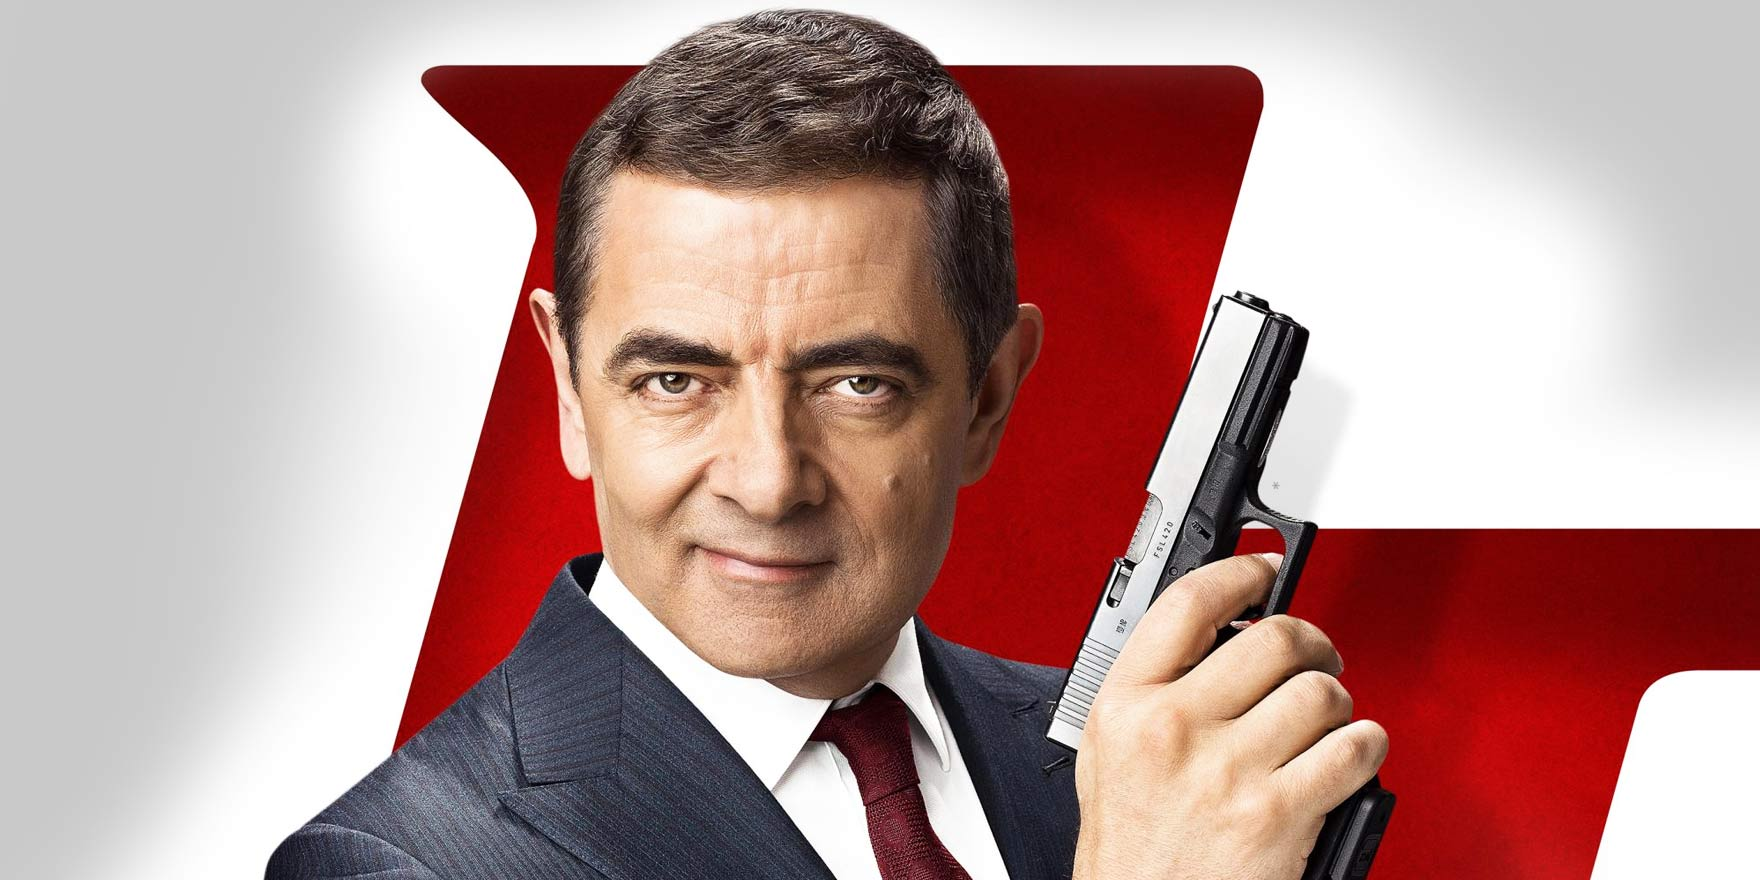 Johnny English Strikes Again - Header Image